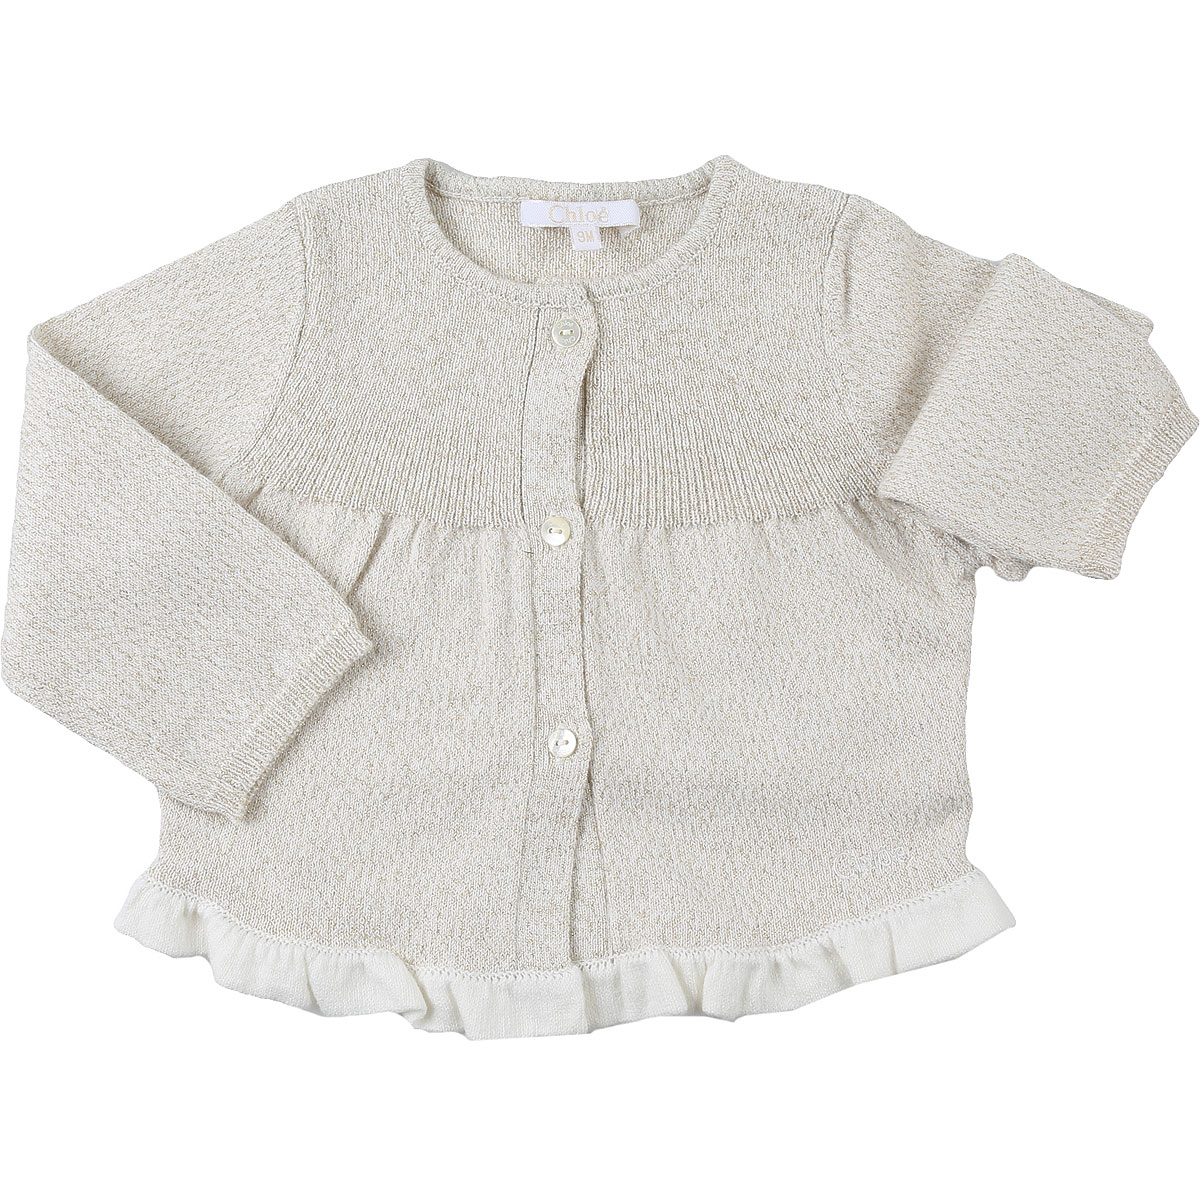 Chloe Baby Sweaters for Girls On Sale, Gold Lurex, Cotton, 2019, 12M 2Y 3Y 6M 9M